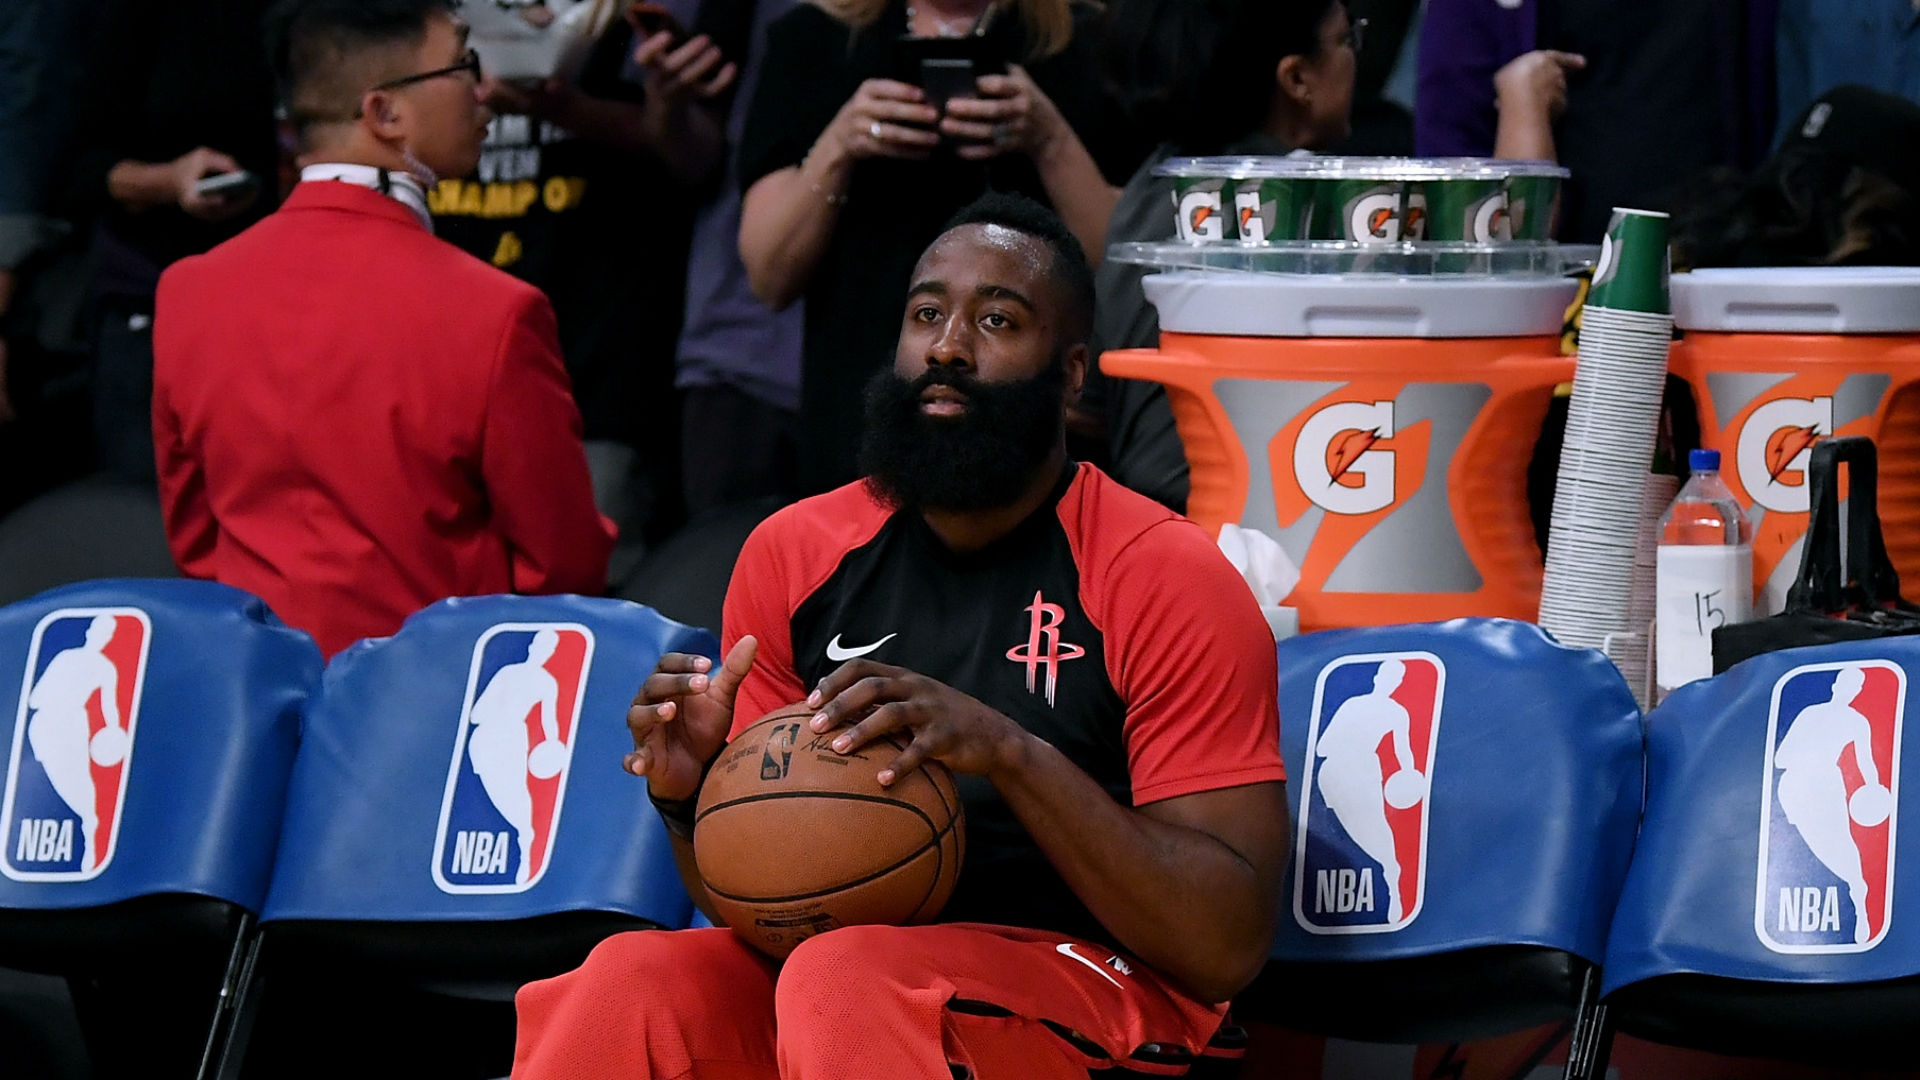 James Harden 'not concerned at all' by Rockets' collapse